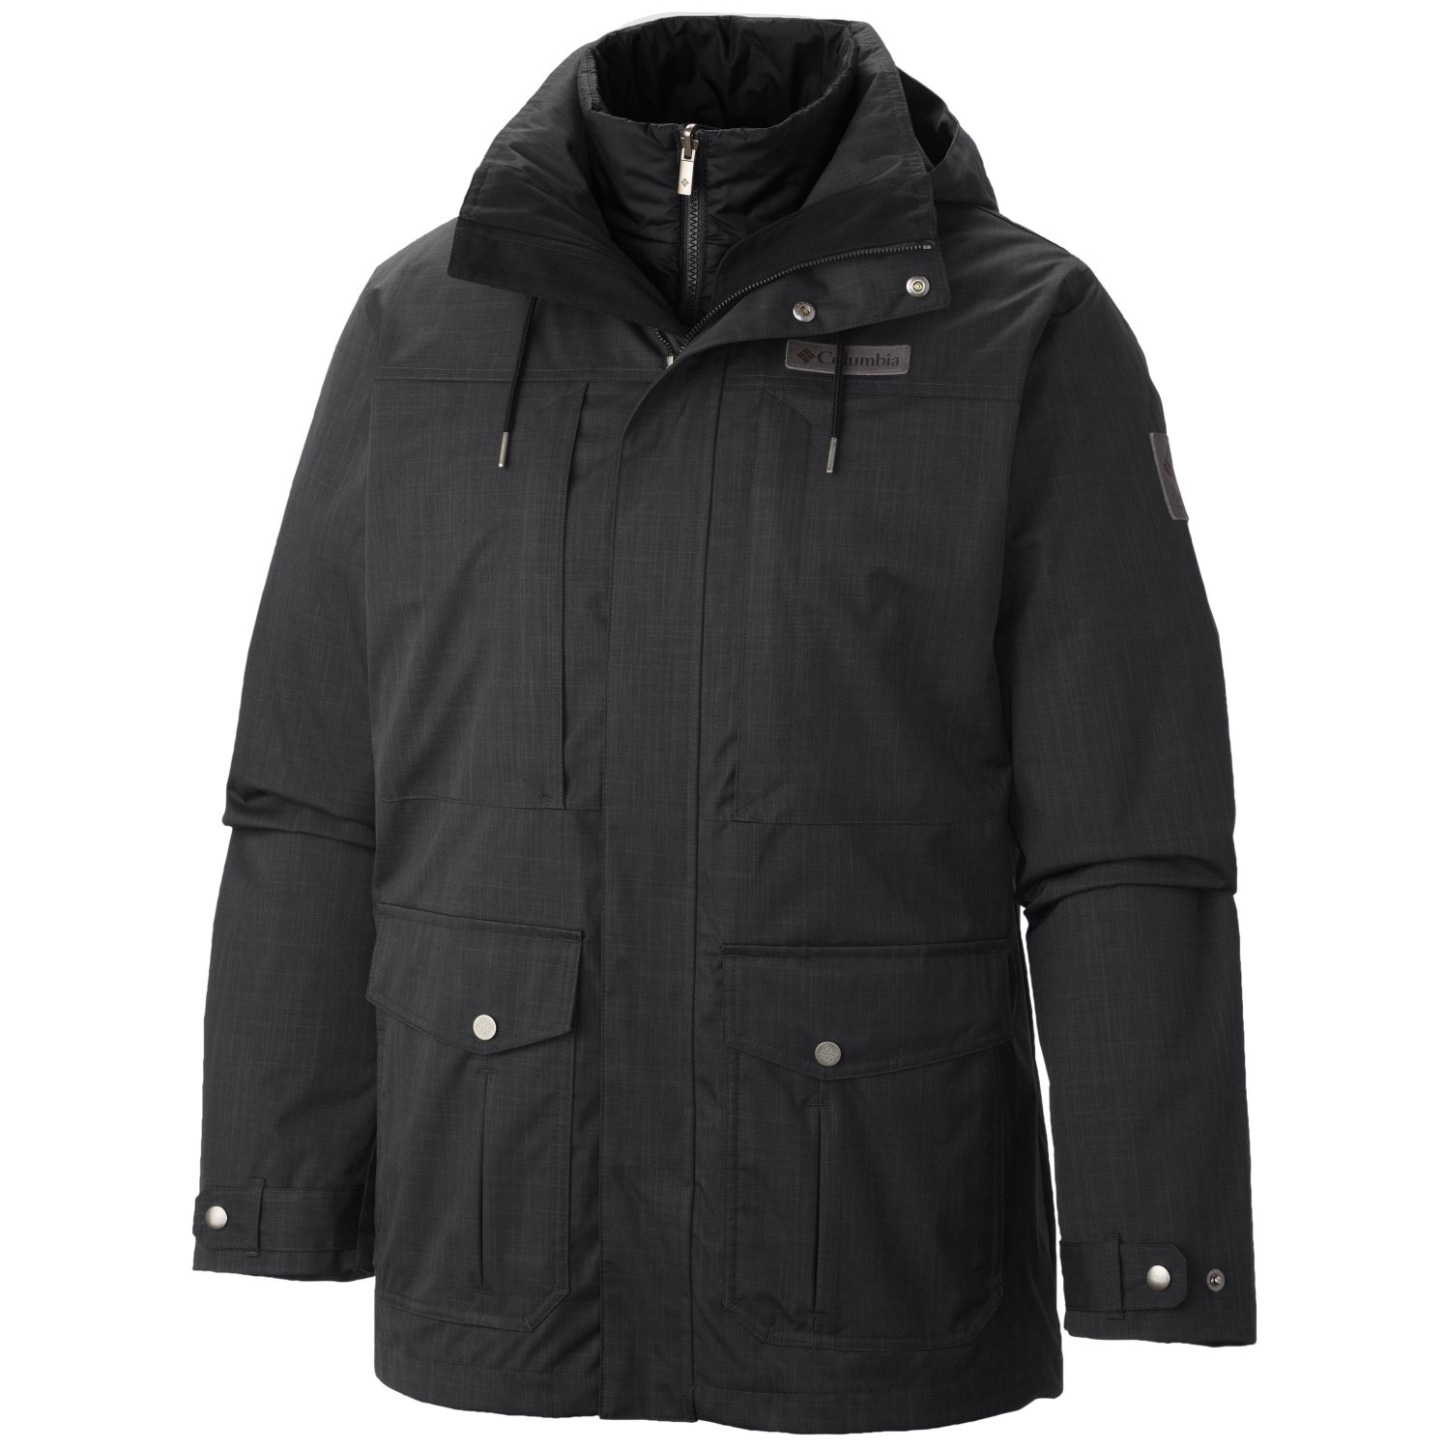 Columbia Men's Horizons Pine Interchange Jacket Black-30